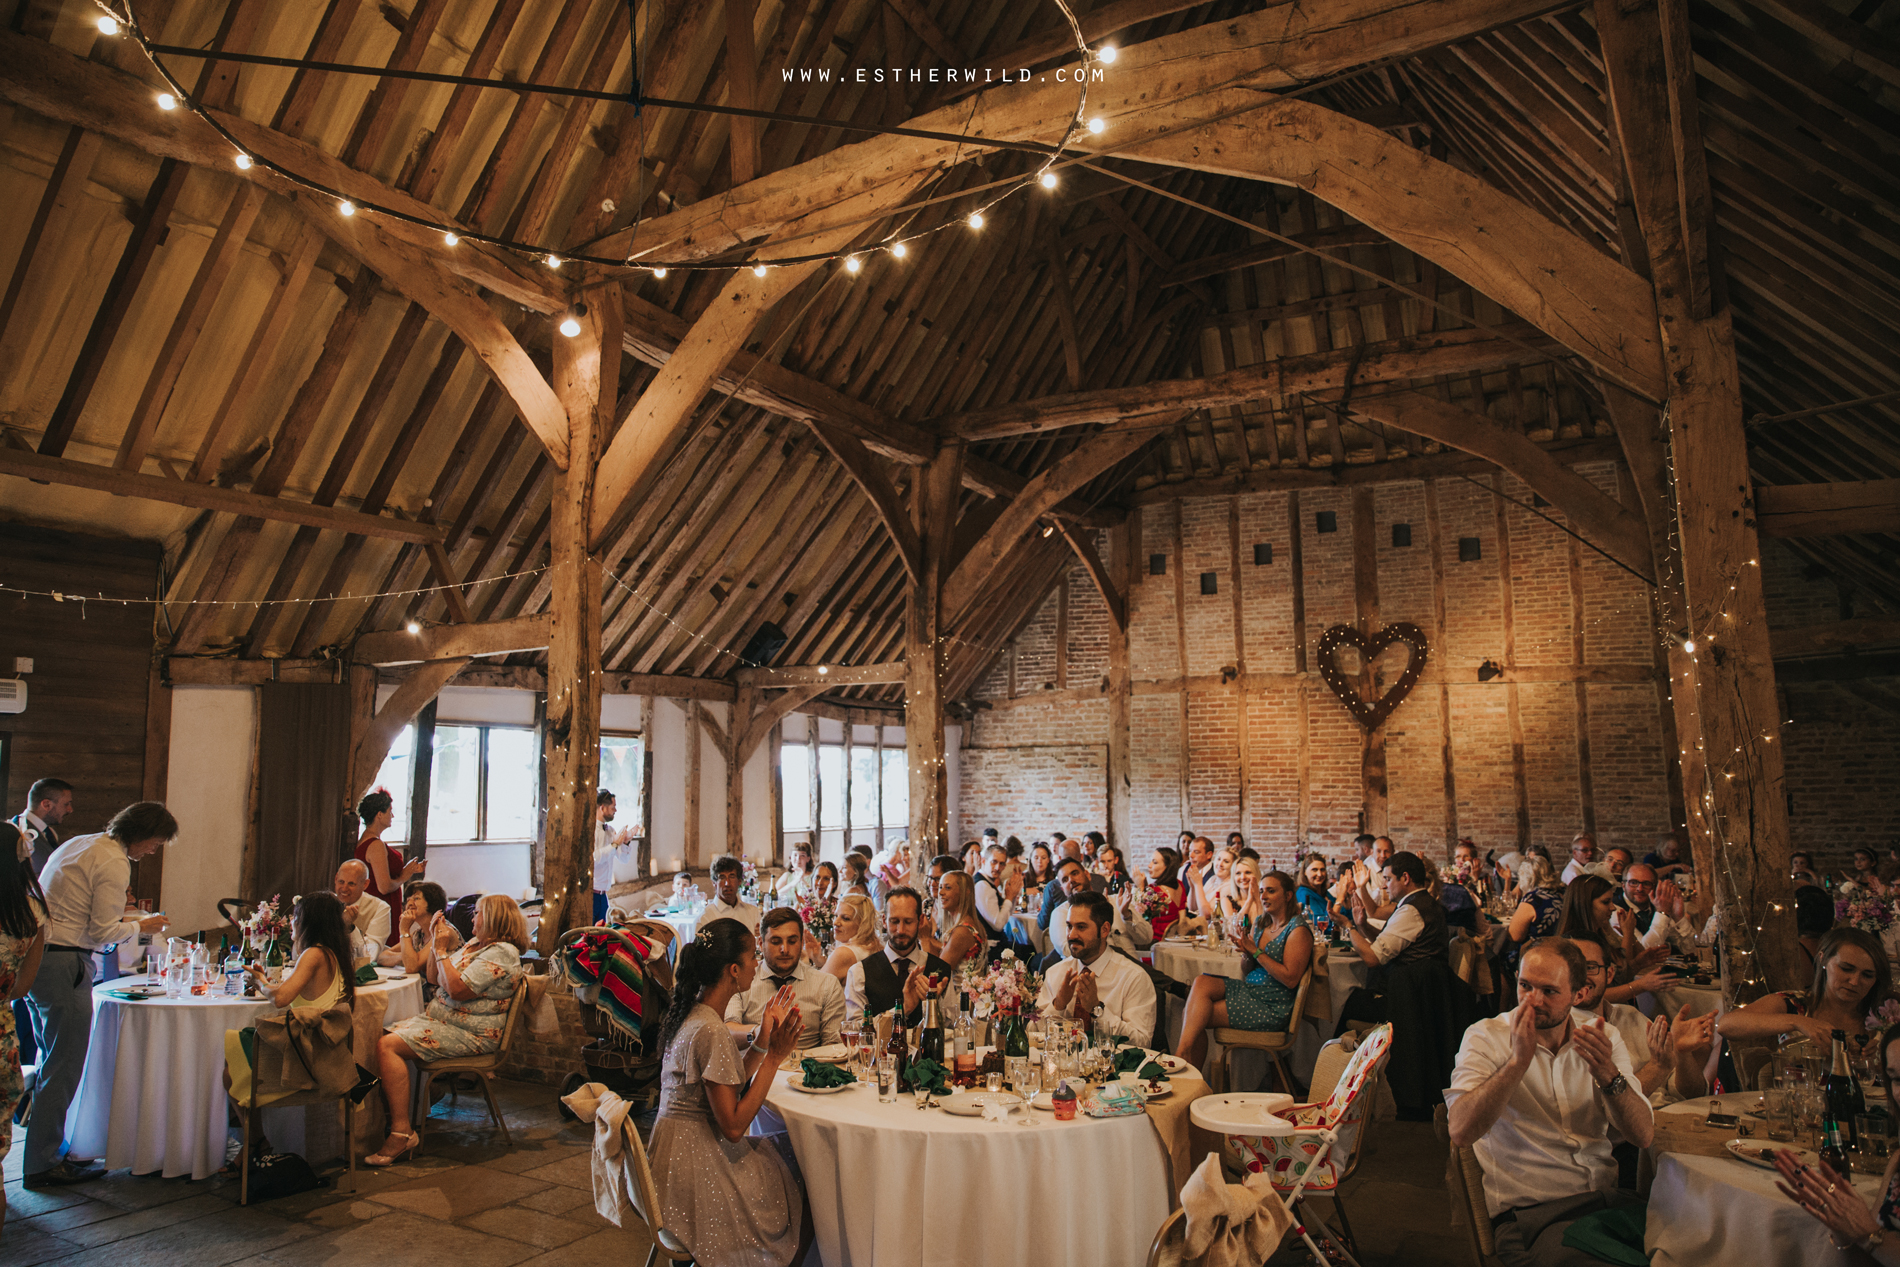 The_Red_Barn_Wedding_Kings_Lynn_Norfolk_IMG_1669.jpg